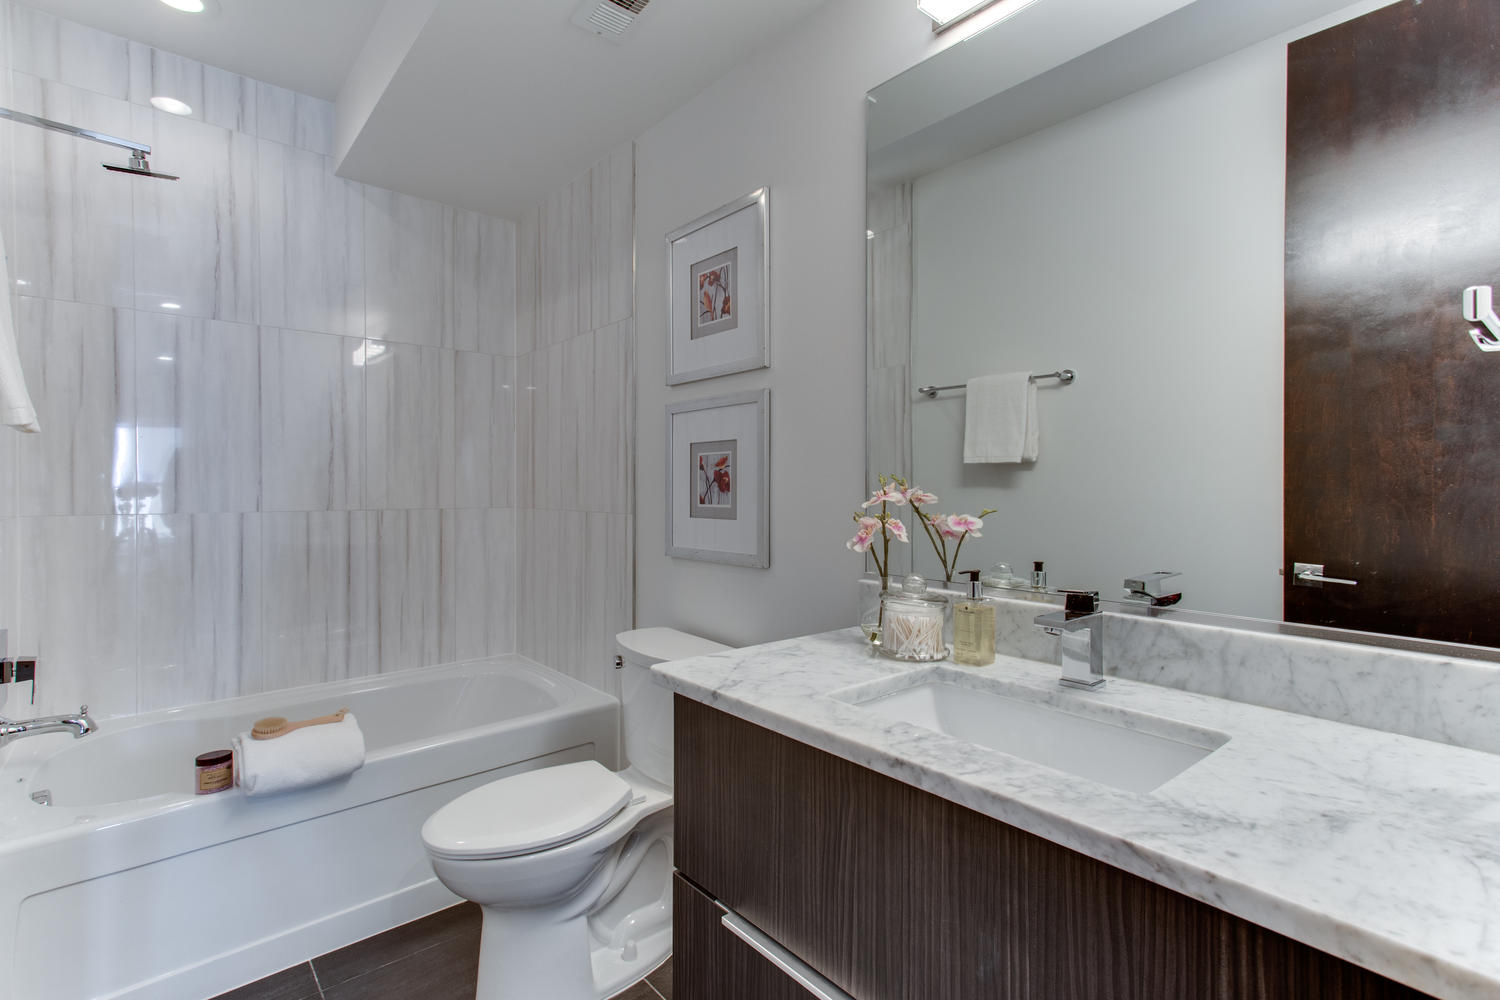 1524 Ogden St NW Unit 2-large-021-22-Bathroom-1500x1000-72dpi.jpg